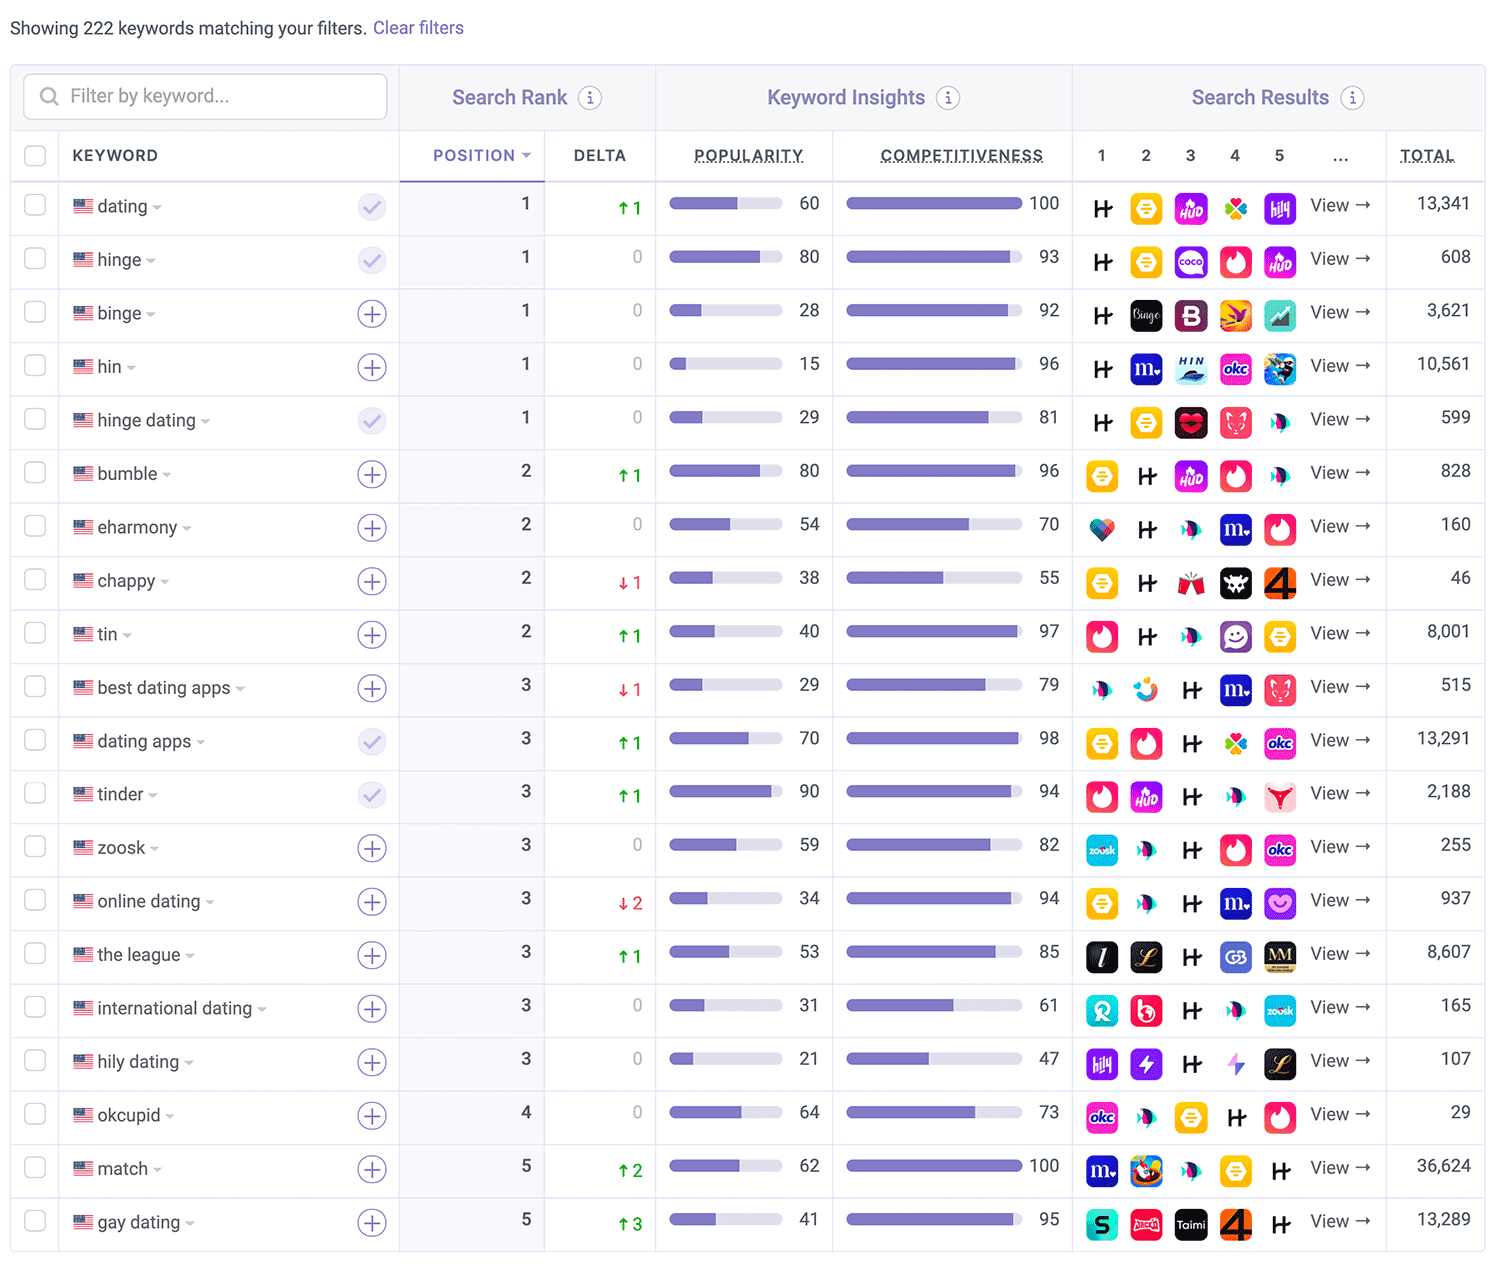 Where Hinge is ranked on the App Store by Appfigures